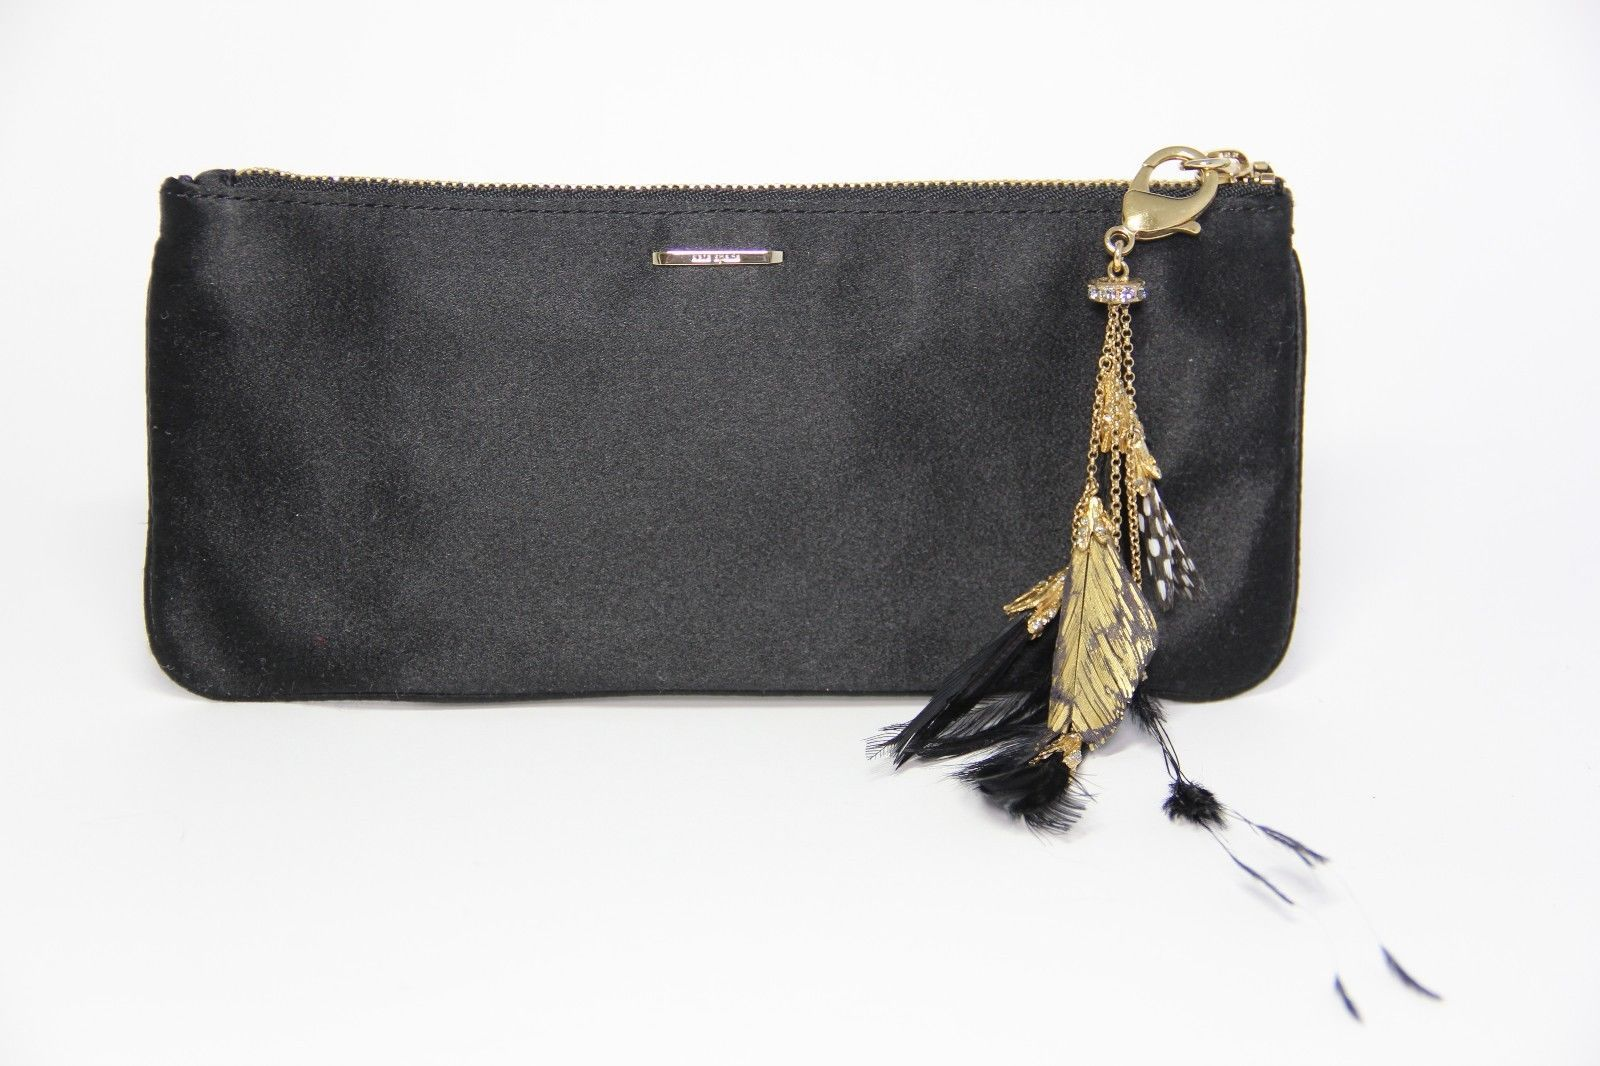 kate spade Small Evening Handbag, Black Satin Feathers & Crystals Purse Charm - $193.05